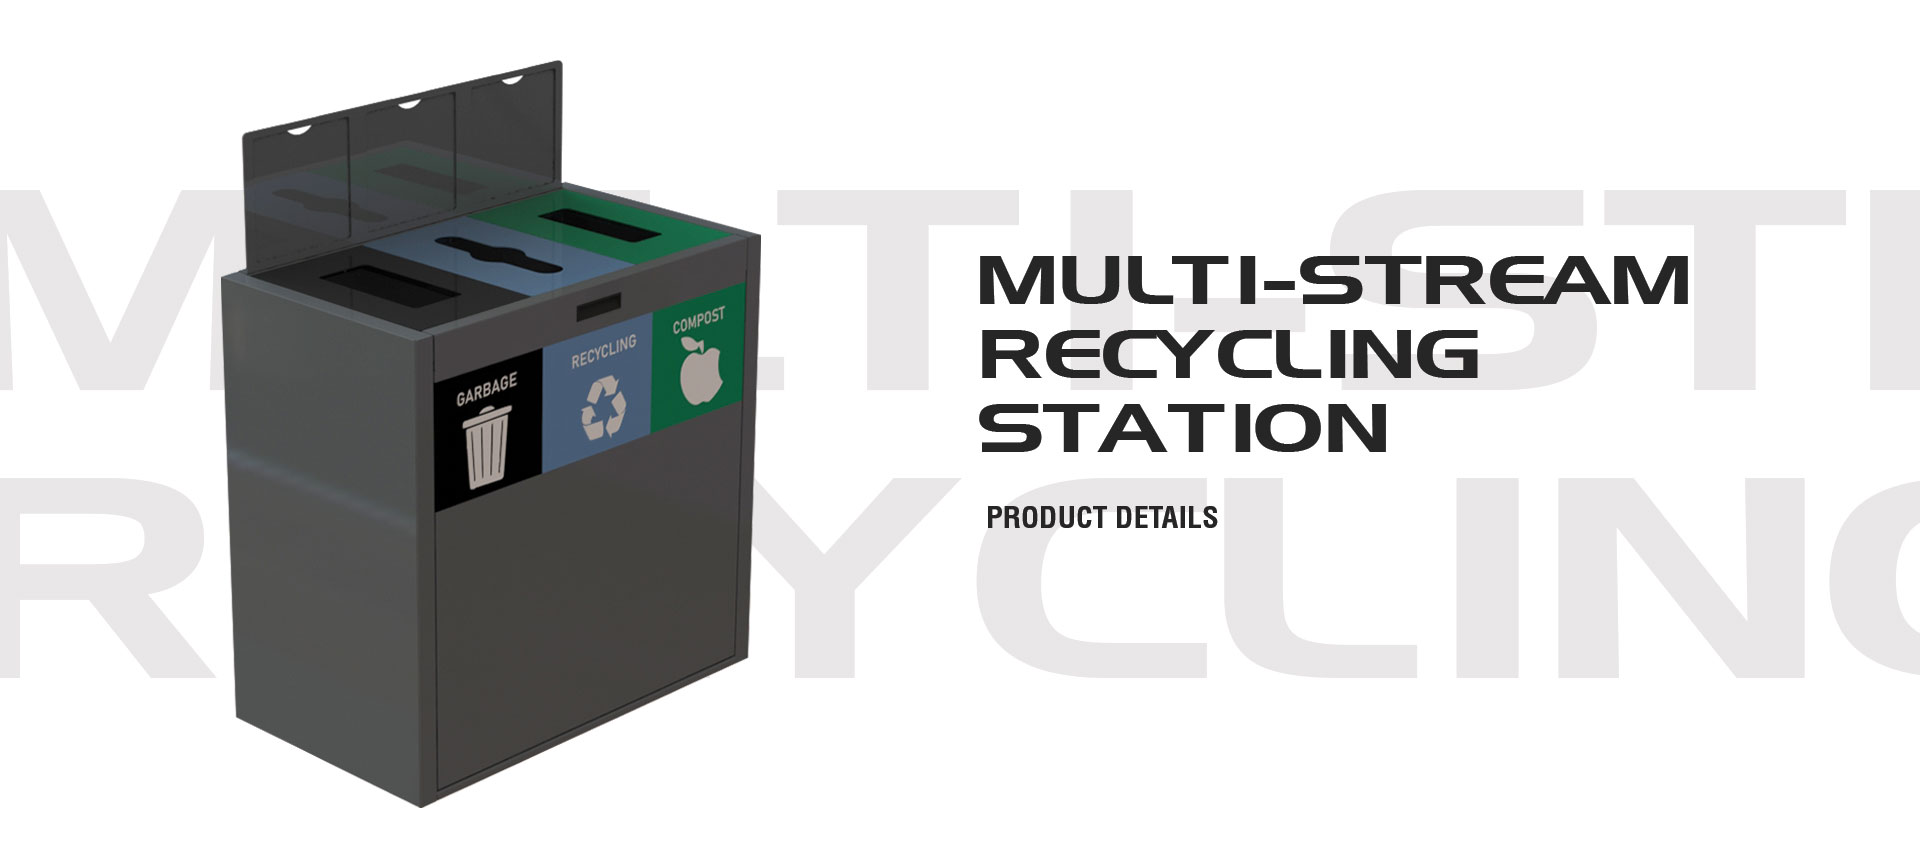 Multi-stream Recycling